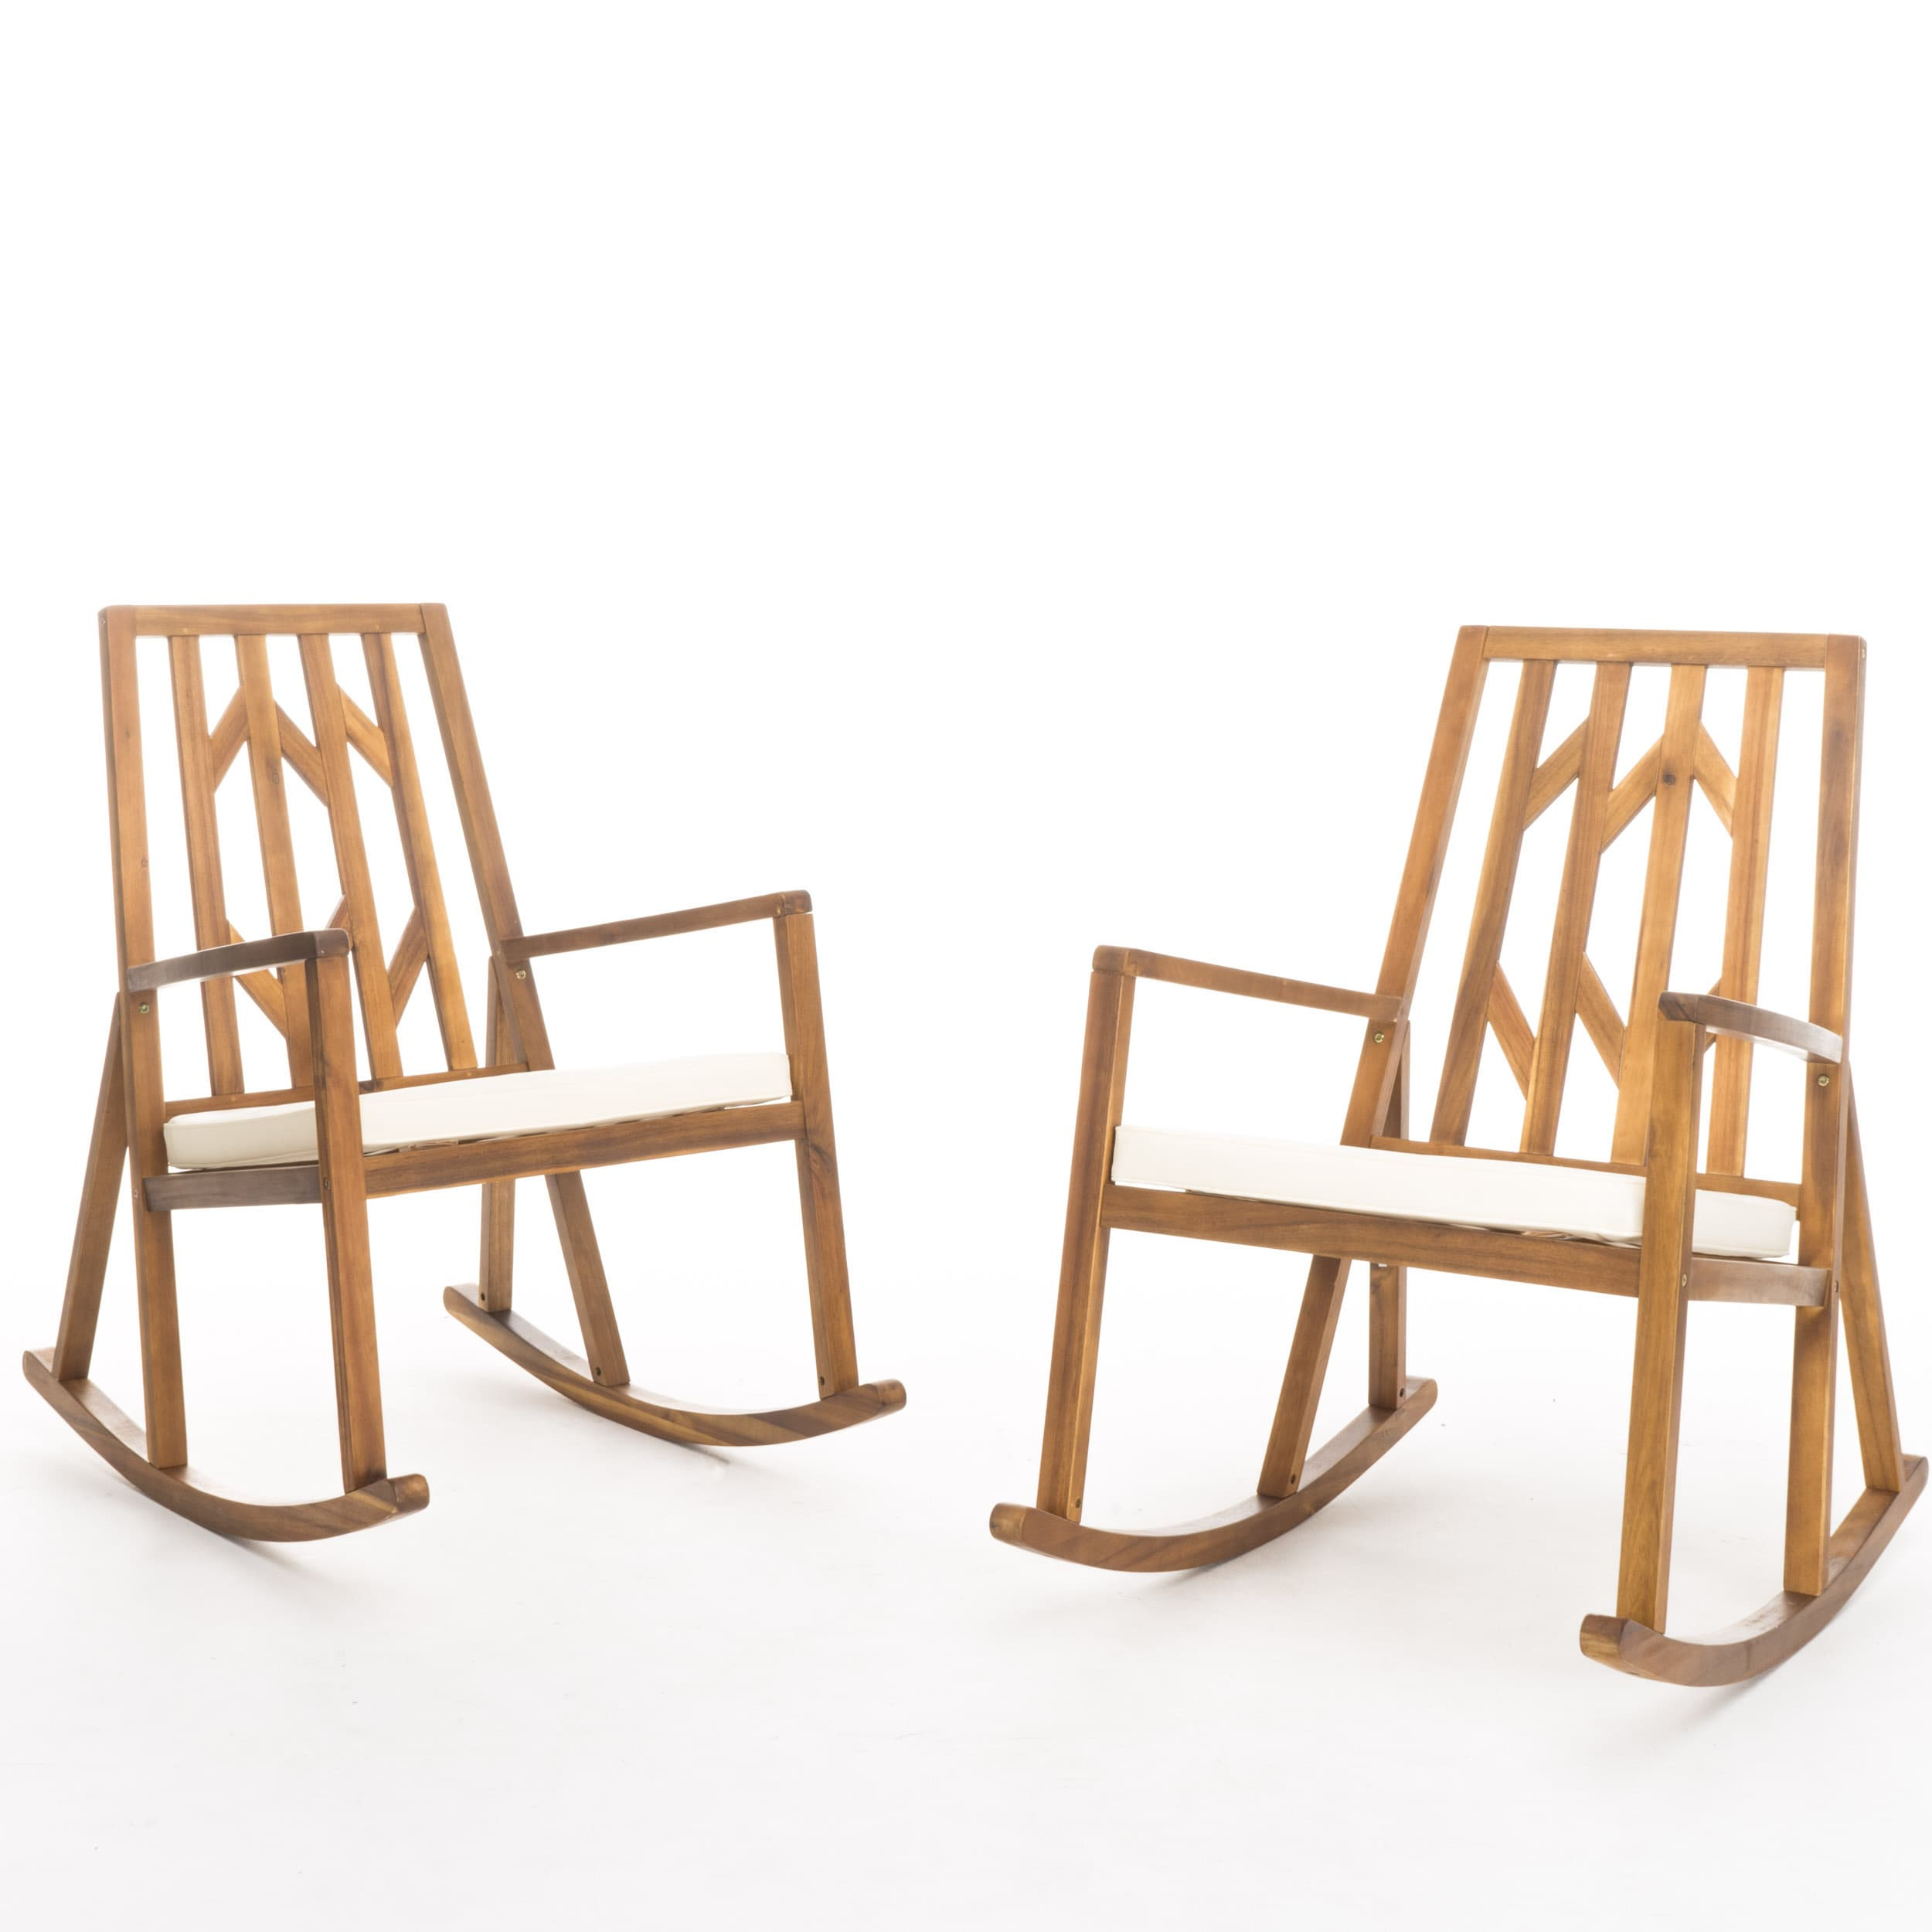 design consign wood s products edmonton rocking img chair